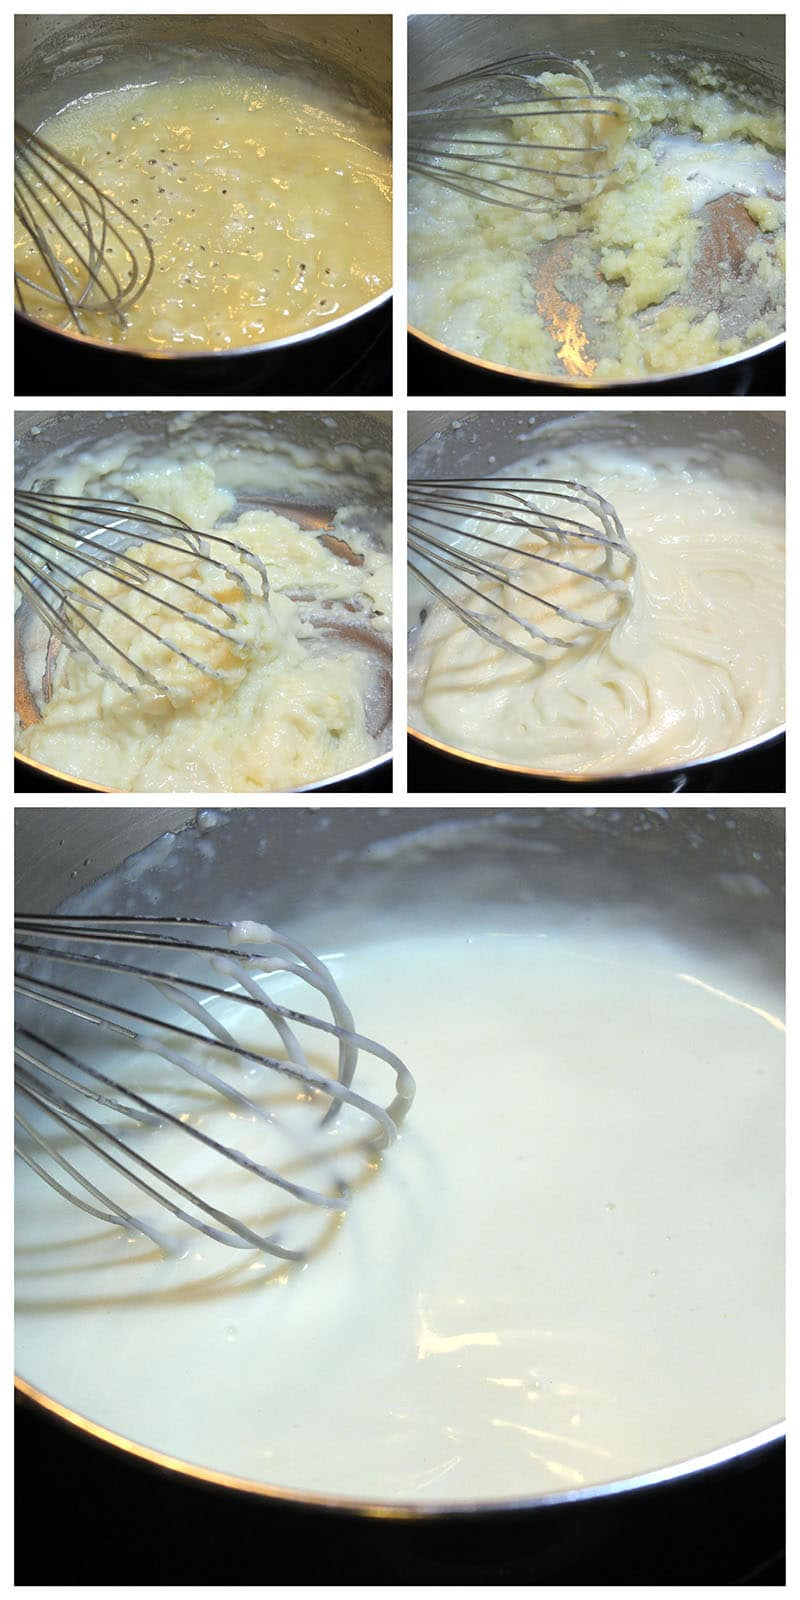 Process of making a roux.